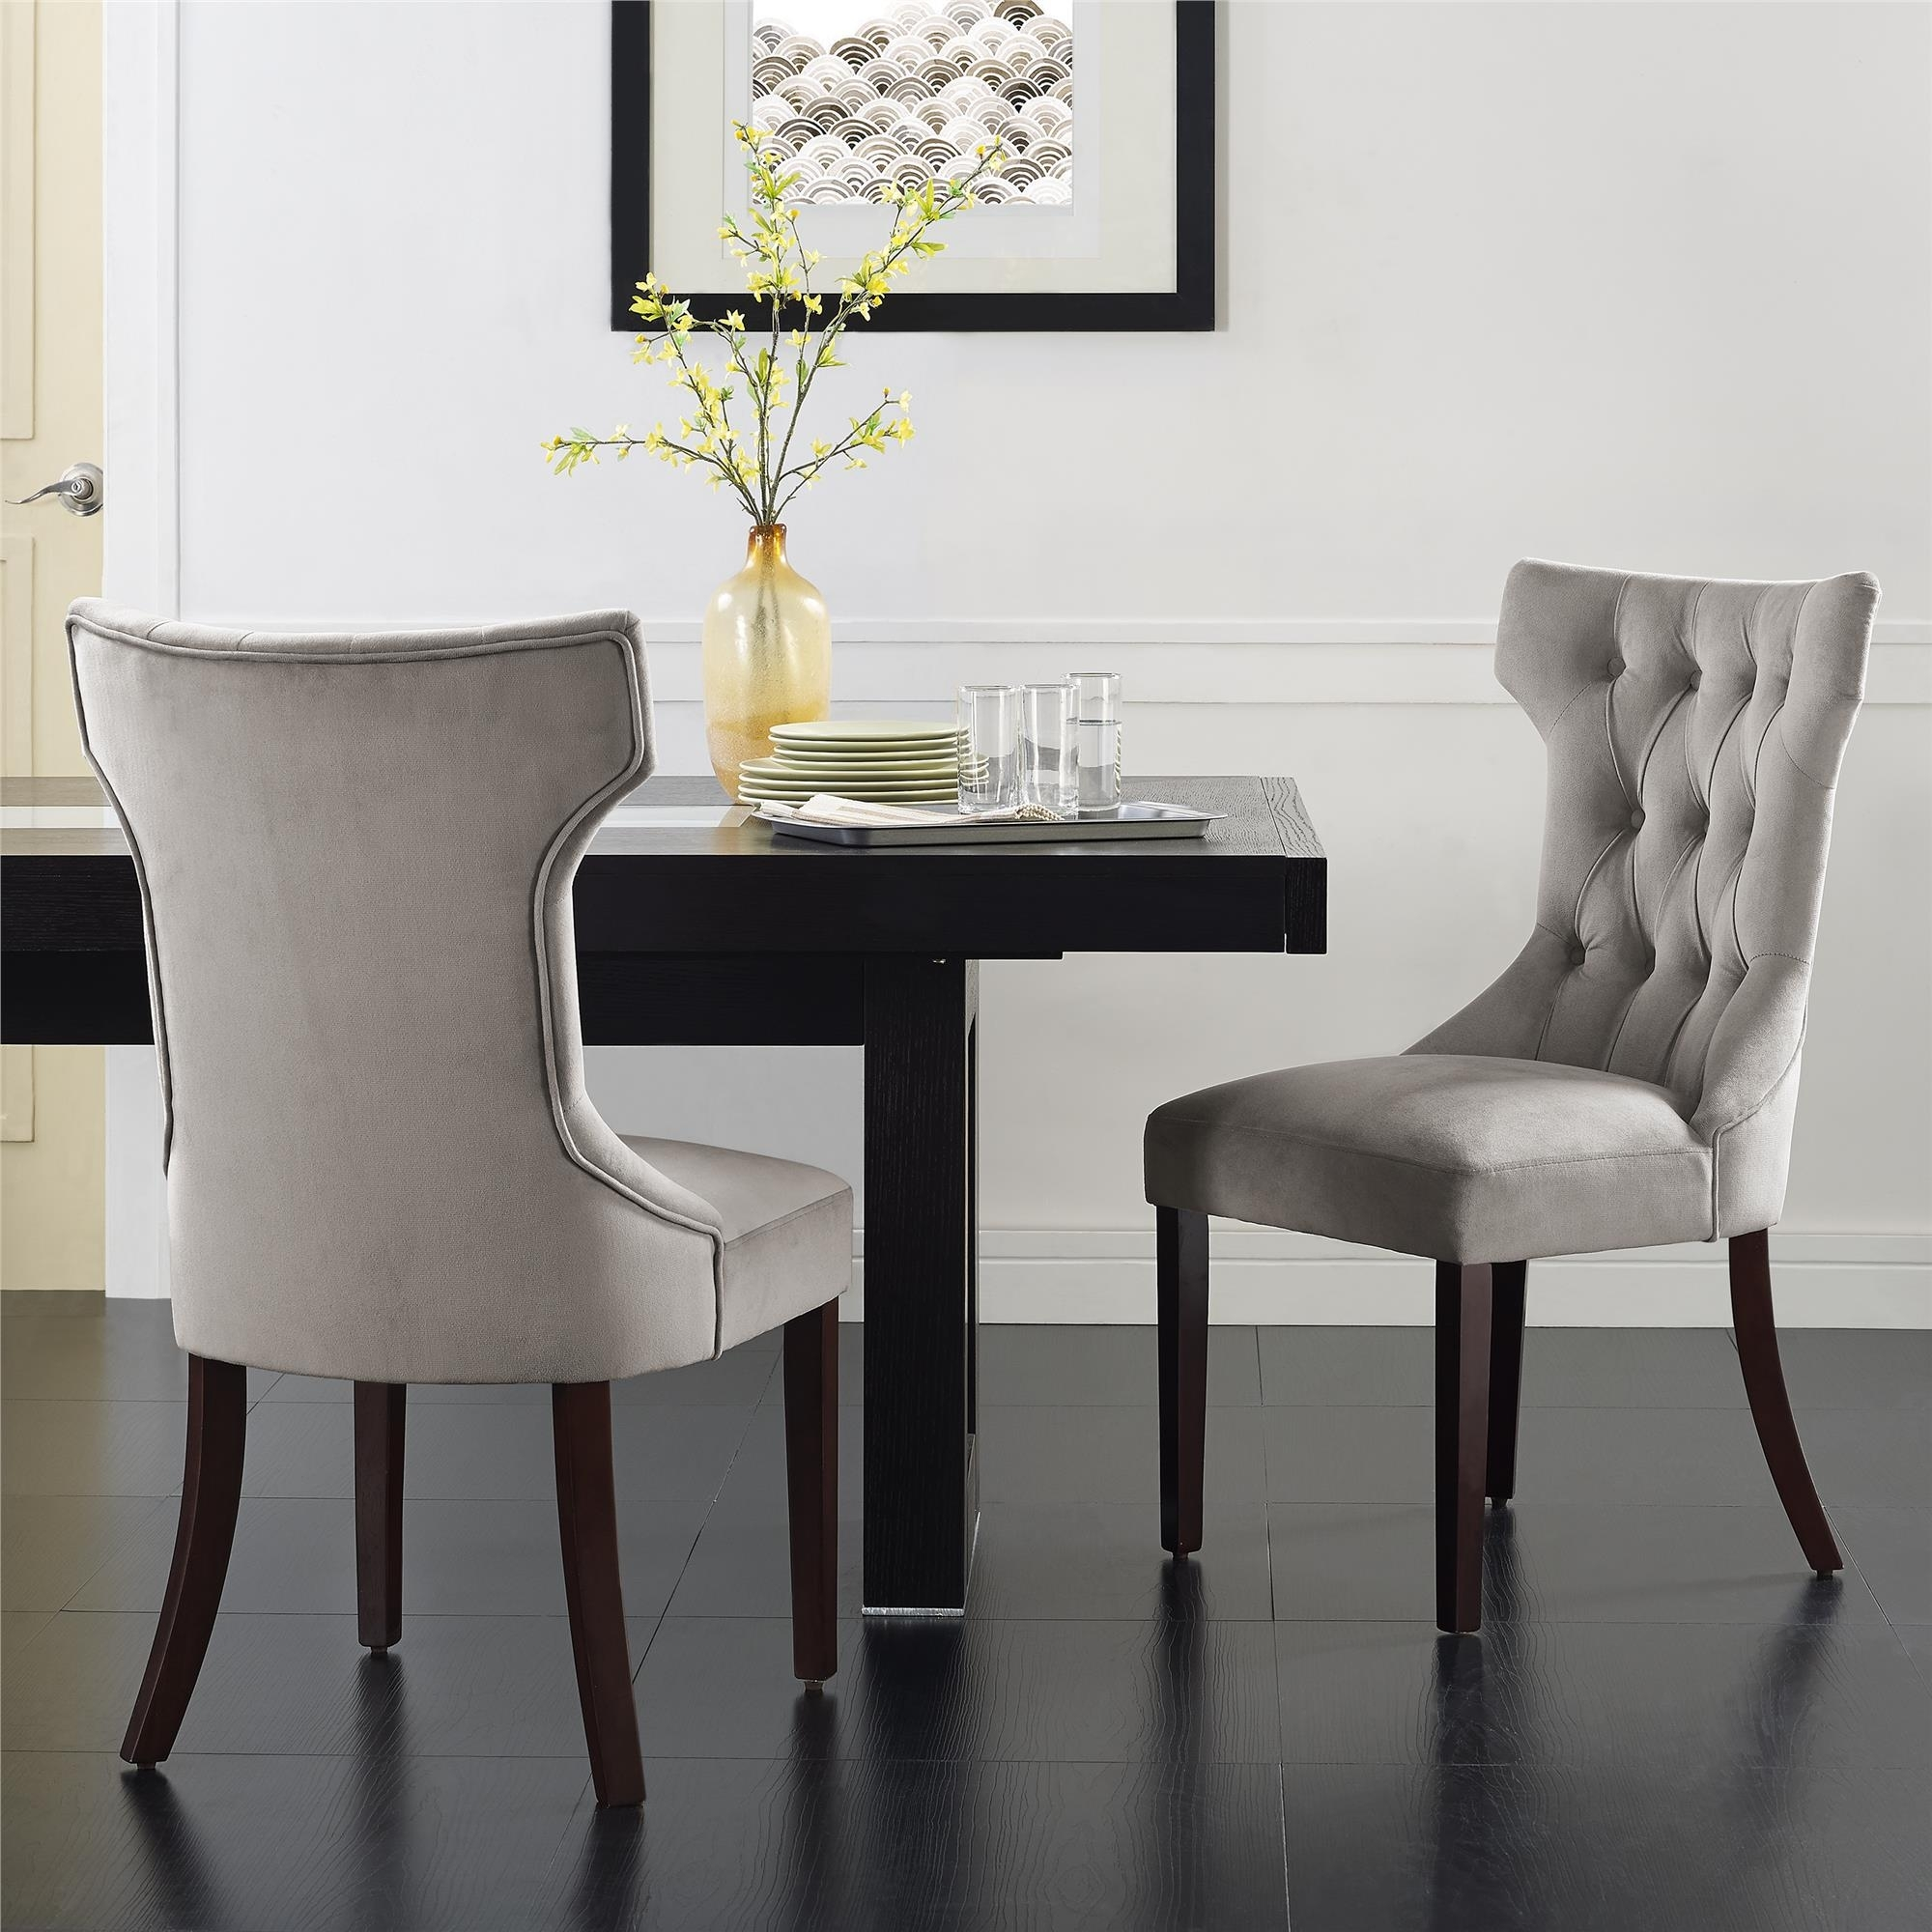 Dorel Living | Dorel Living Clairborne Tufted Dining Chair, Taupe In Newest Market 7 Piece Dining Sets With Side Chairs (Photo 7 of 20)